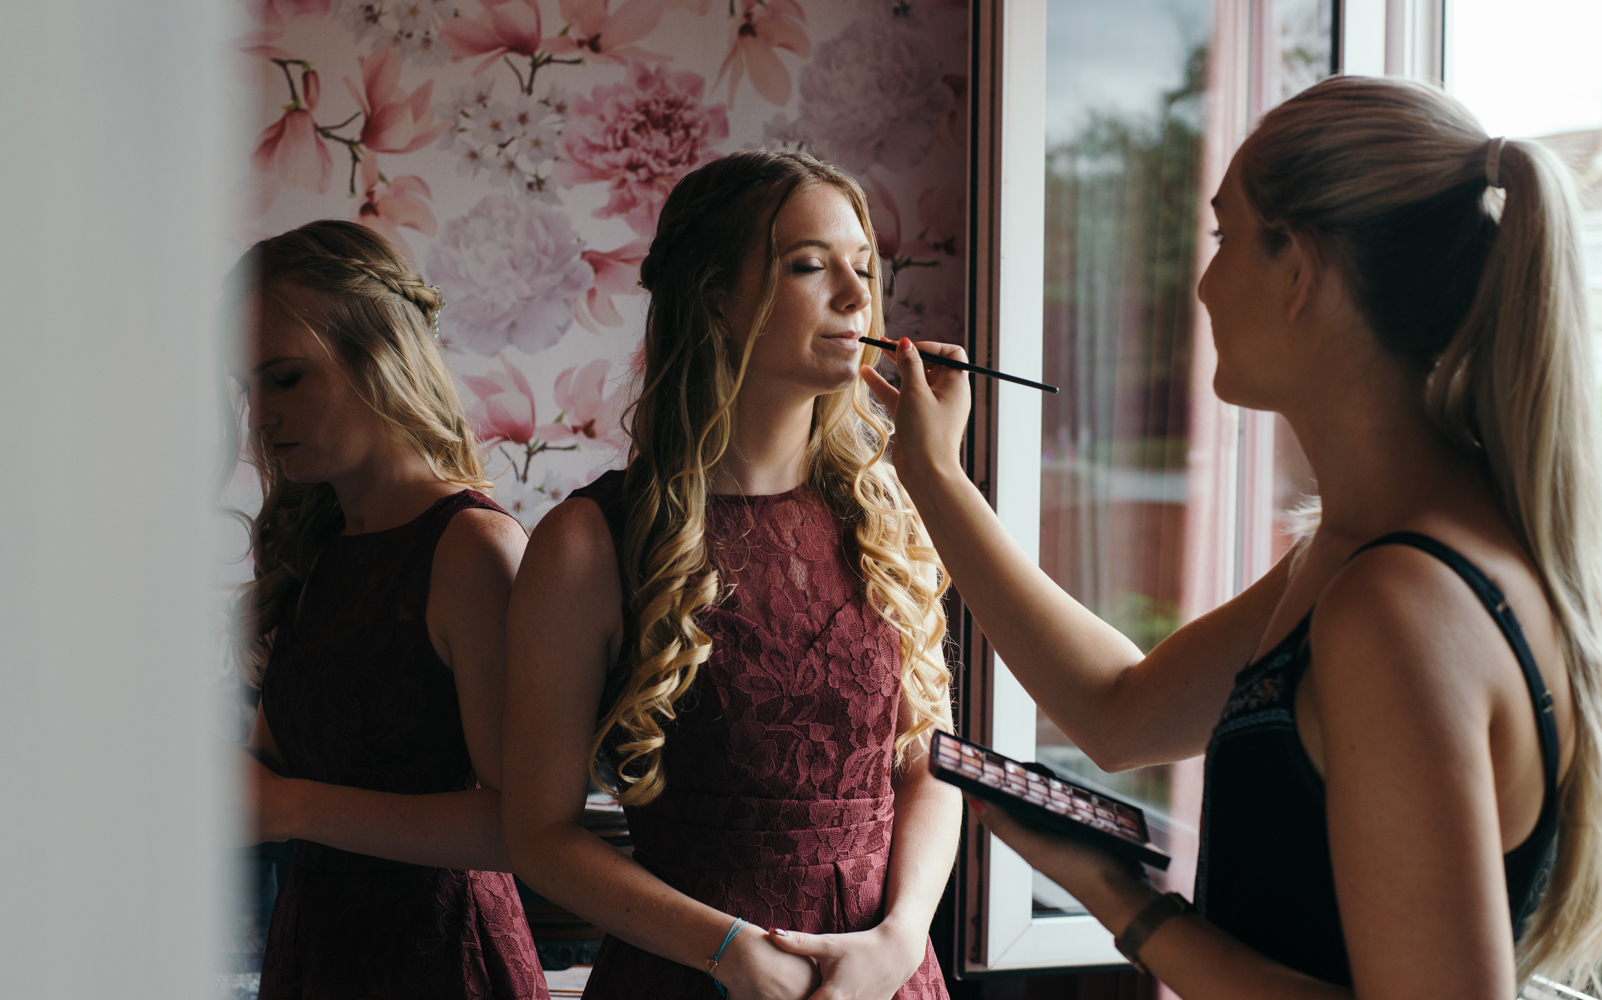 Final touches of lipstick for a bridesmaid